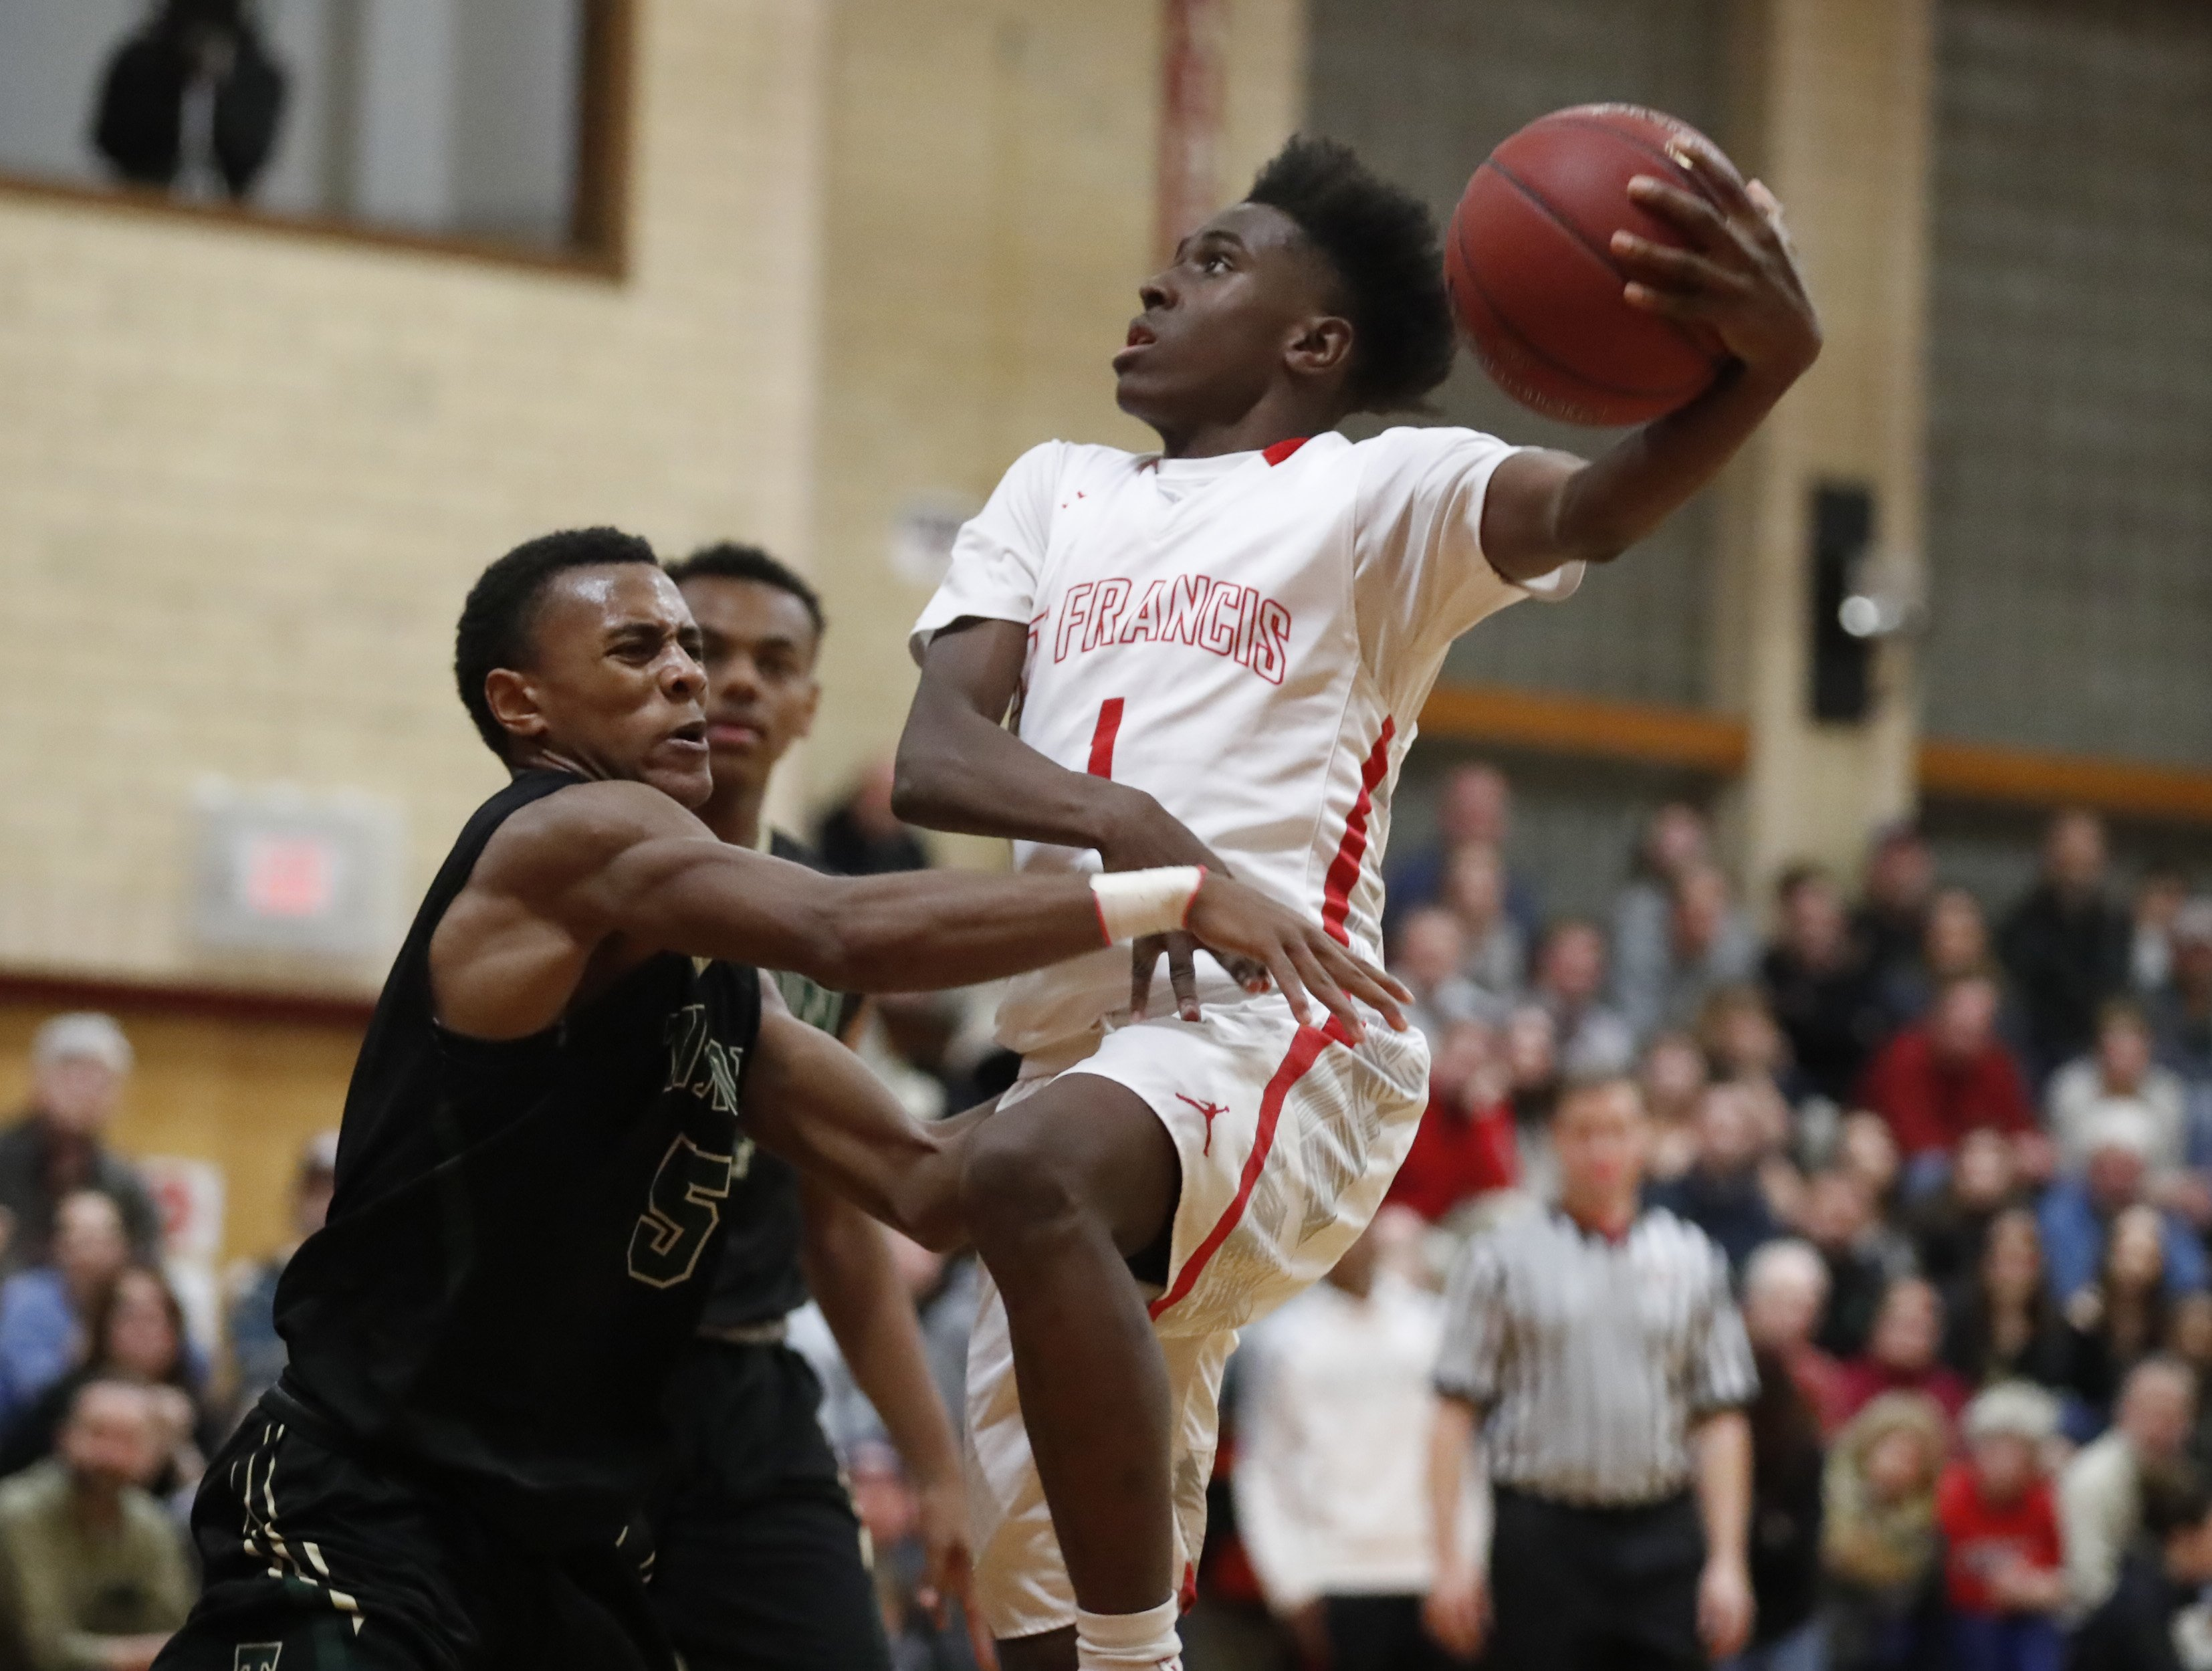 Julian Cunningham of St. Francis is part of the top-ranked large school team in boys basketball this week.